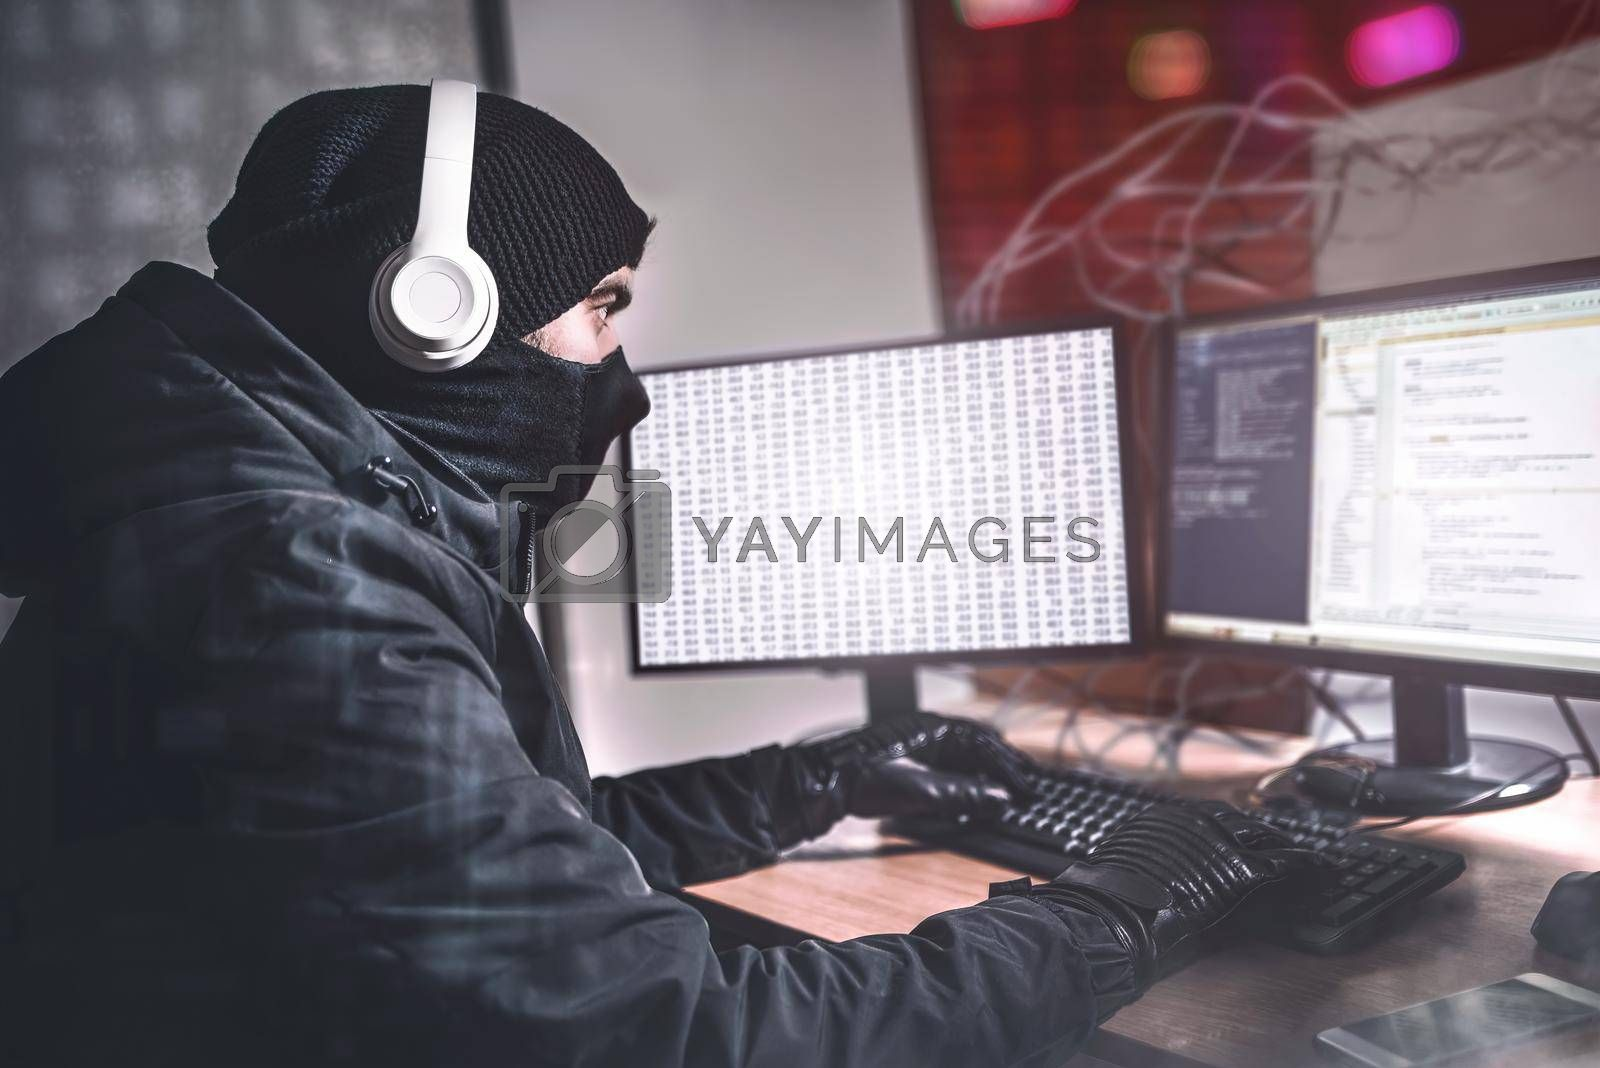 Royalty free image of Teenage Hacker man Using her Computer to Organize Malware Attack on Global Scale. She's in Underground Secret Location Surrounded by Displays and Cables. by Nickstock